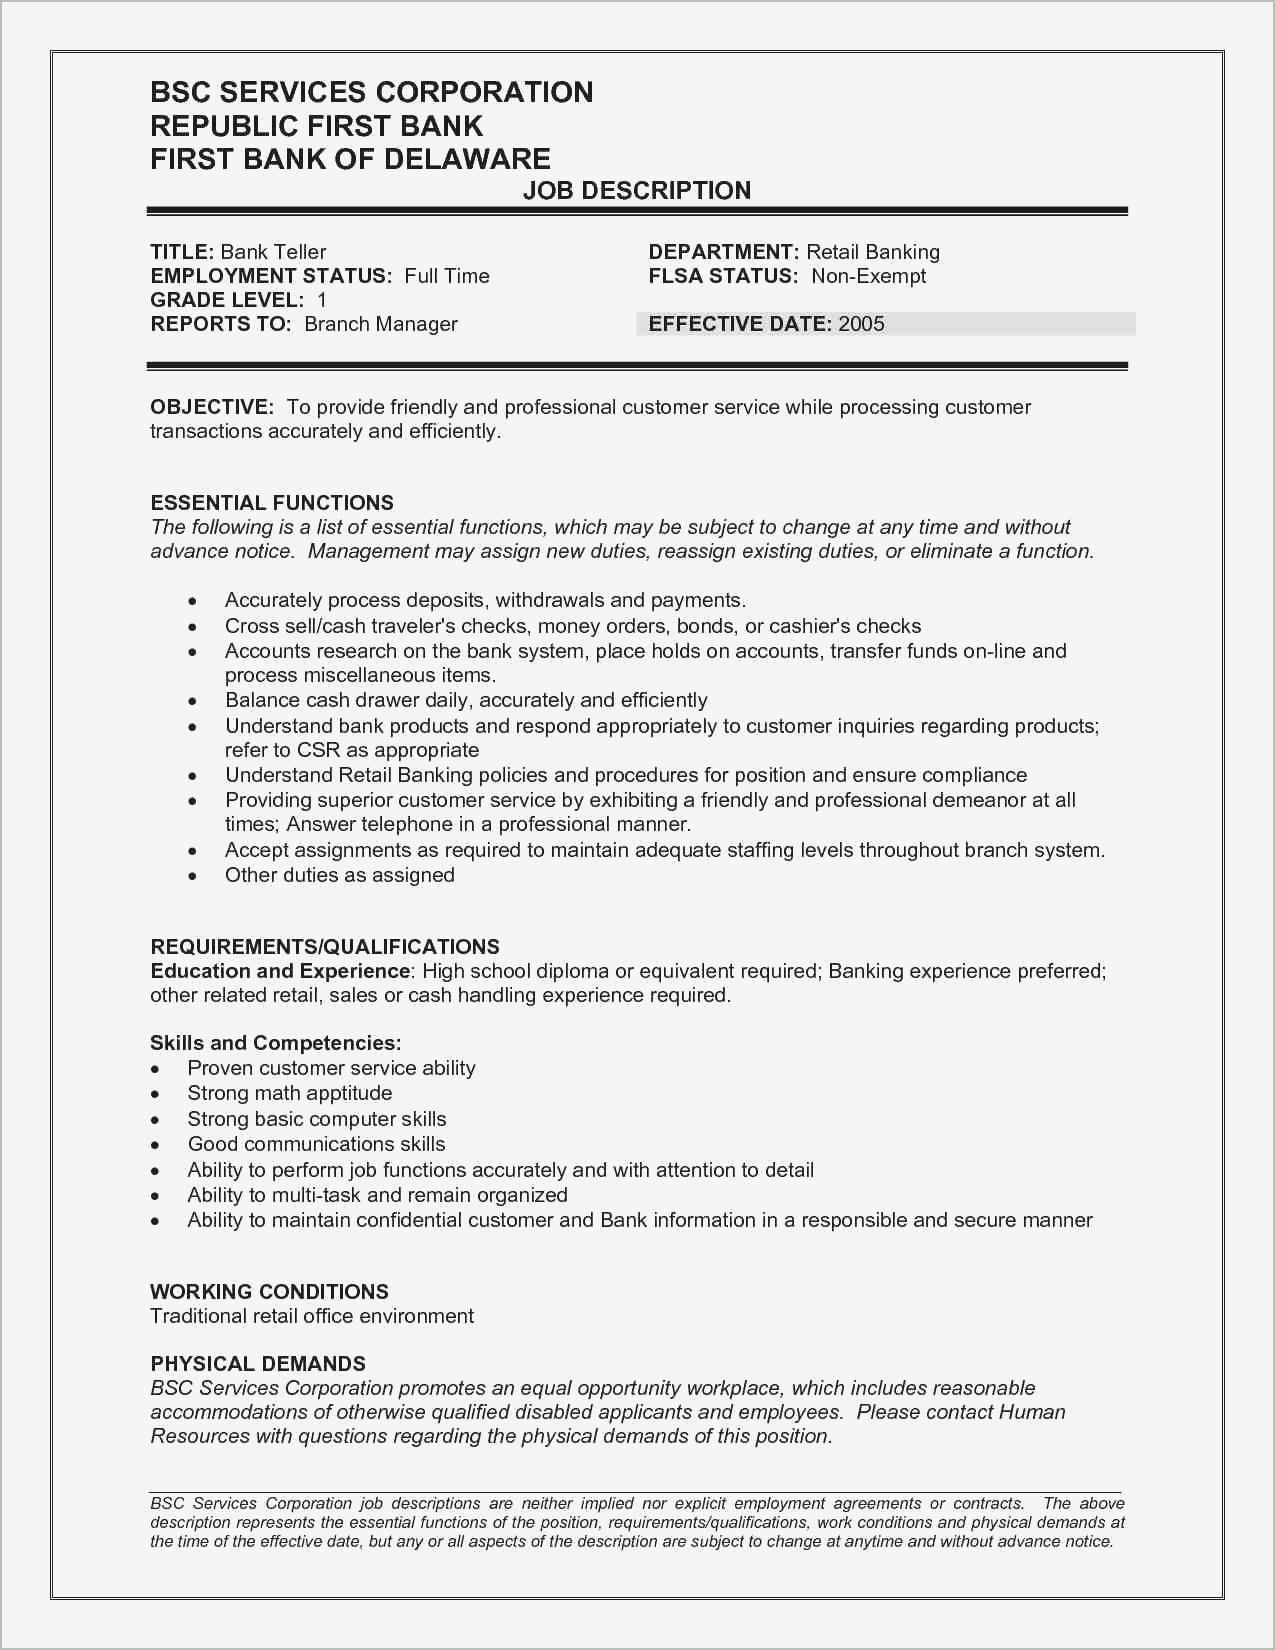 70 Luxury Photos Of Resume Examples For Banking Jobs Check More At Https Www Ourpetscrawley Com 70 Luxury Photos Of Resume Examples For Banking Jobs